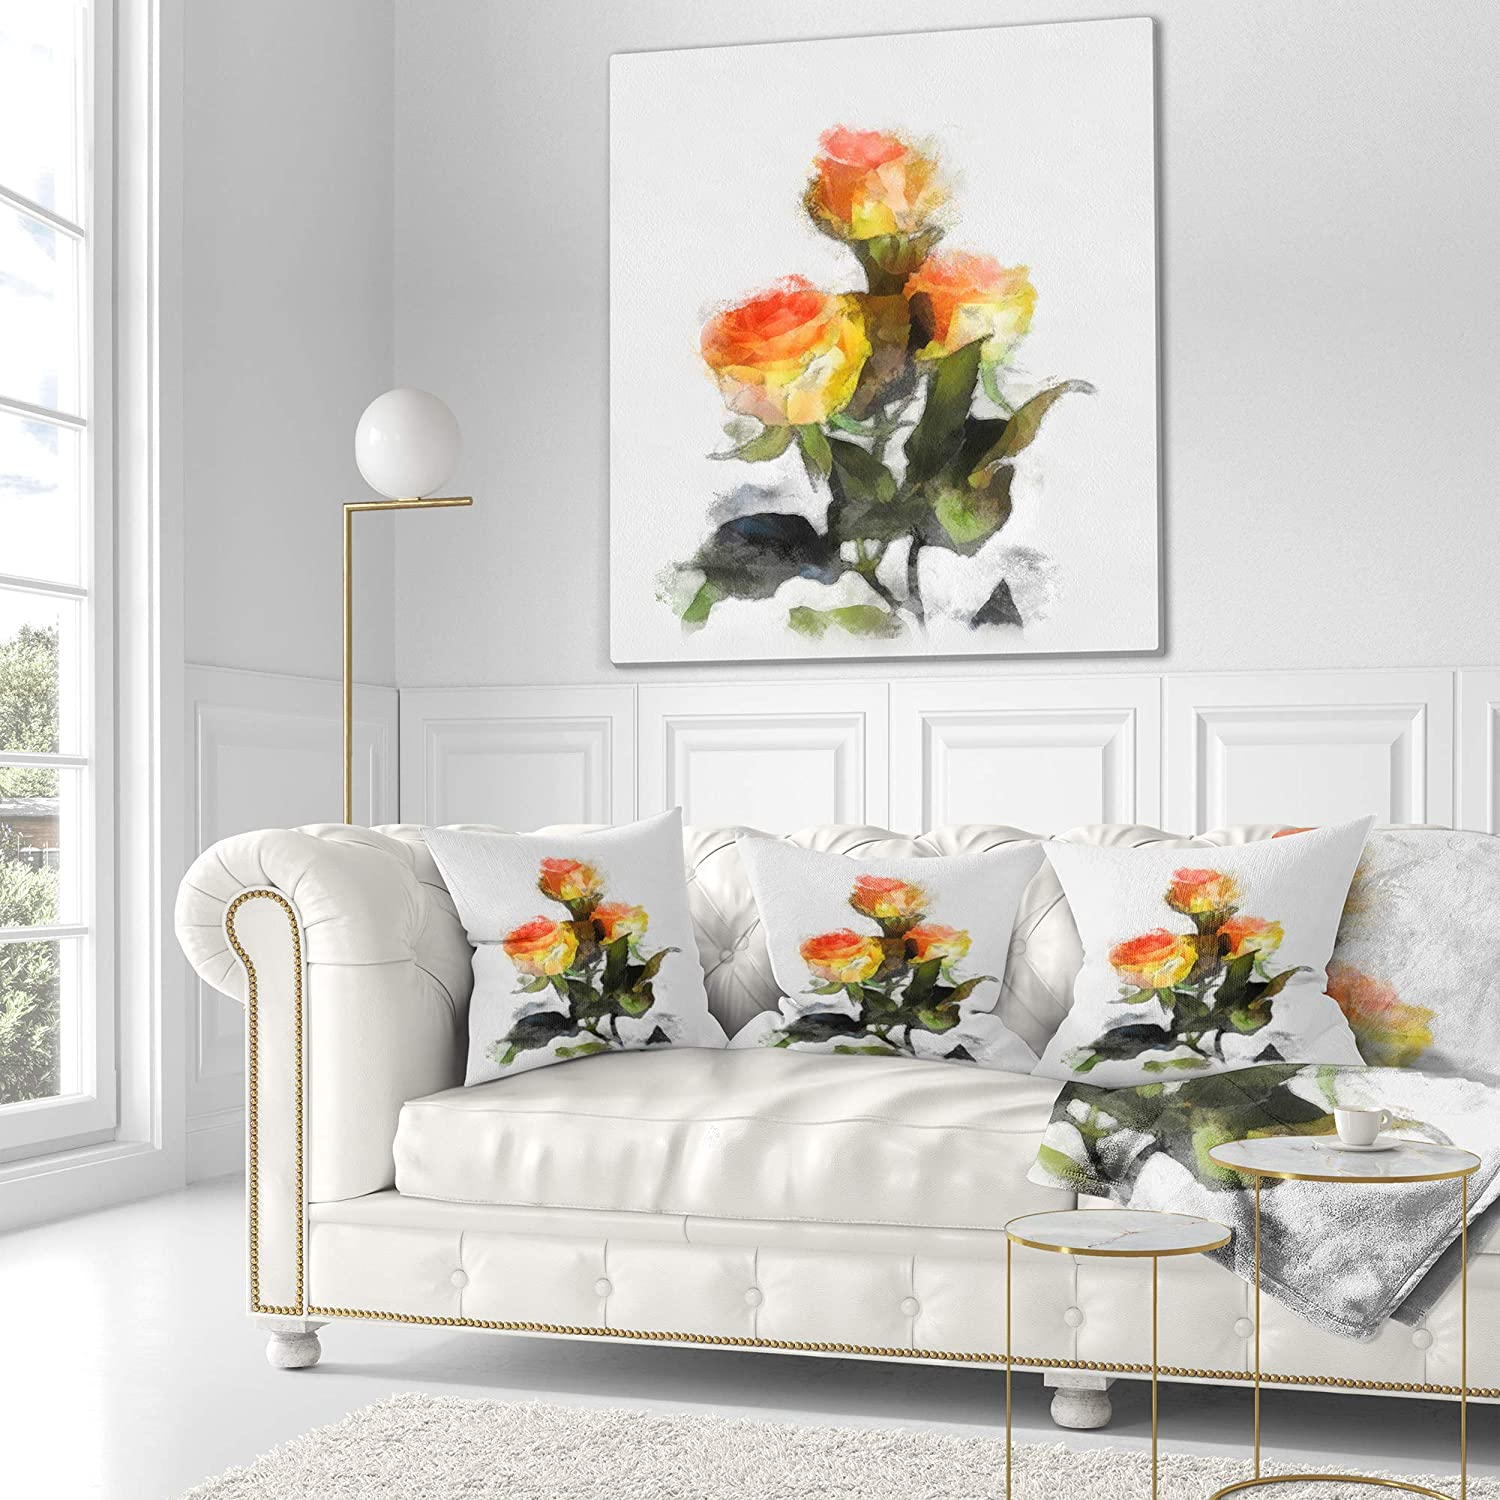 x 26 in in Designart CU13611-26-26 Hand Drawn Yellow and Red Roses Floral Cushion Cover for Living Room Sofa Throw Pillow 26 in Insert Printed On Both Side